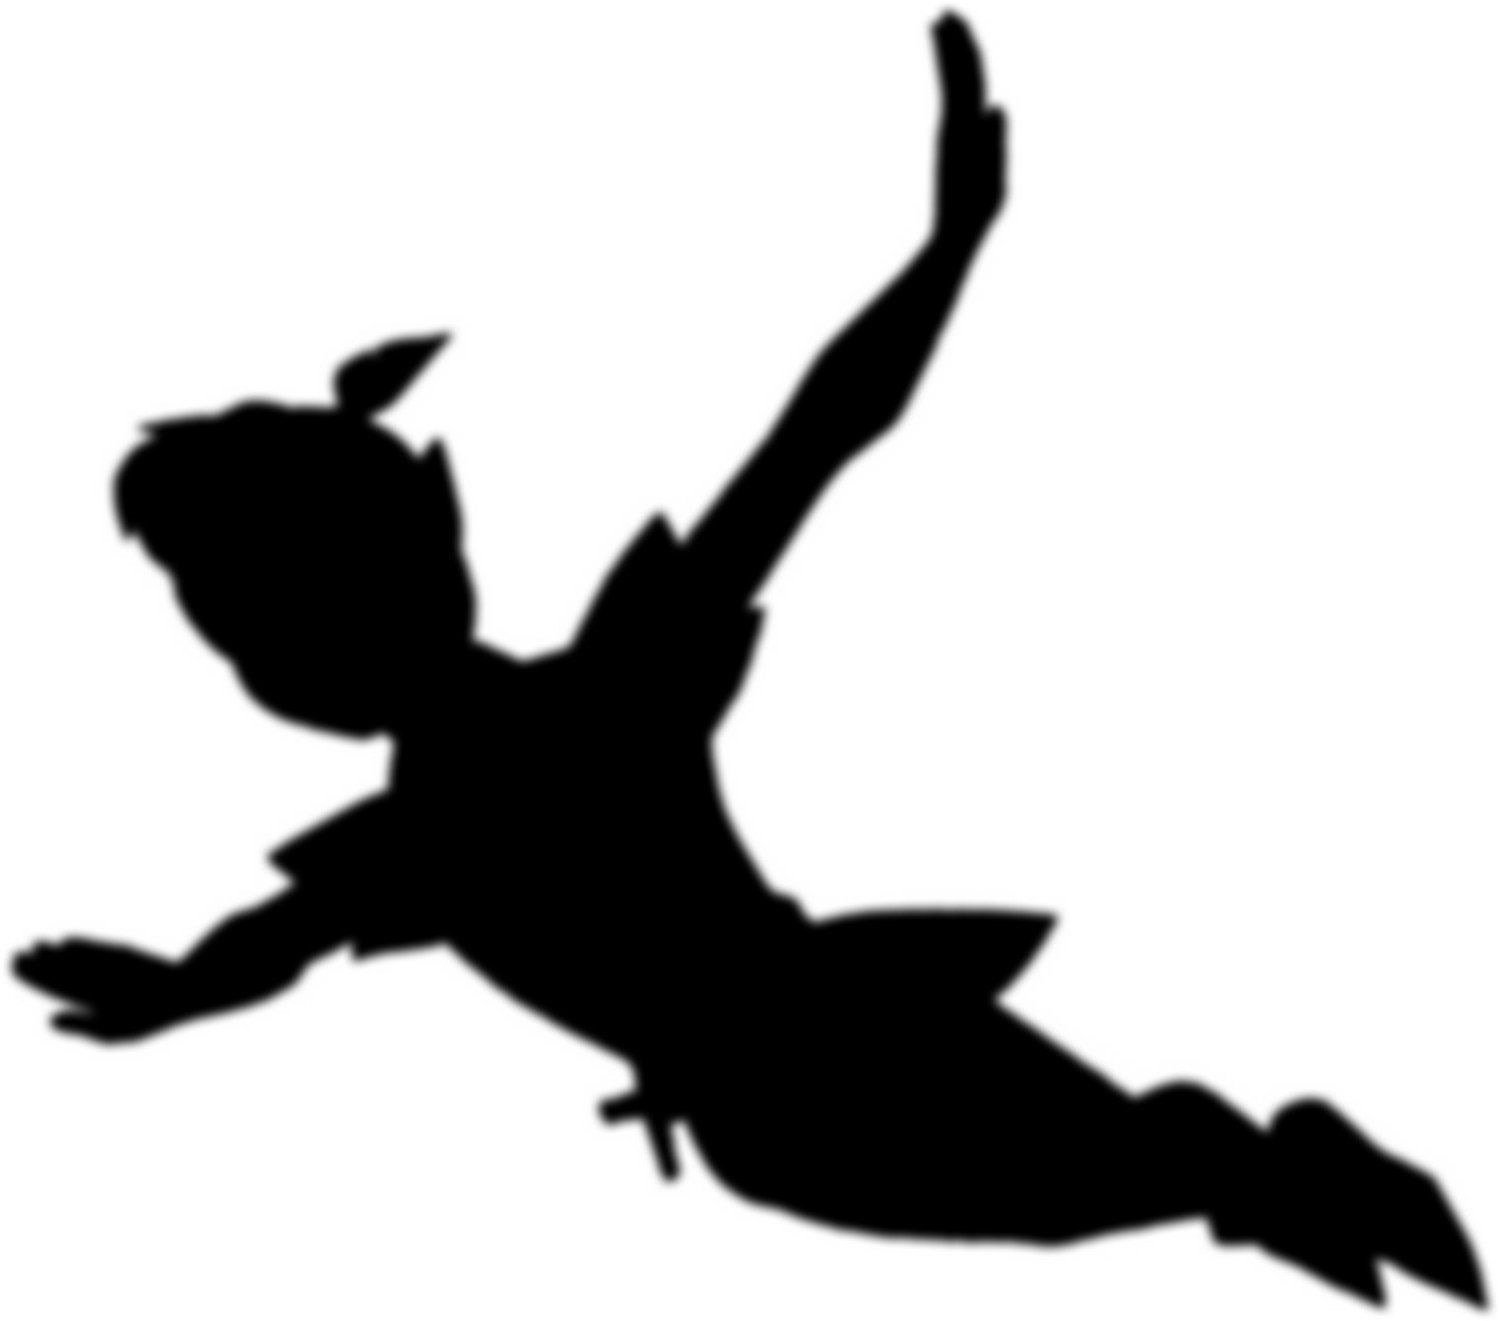 Peter Pan silhouette | SVG Files | Pinterest